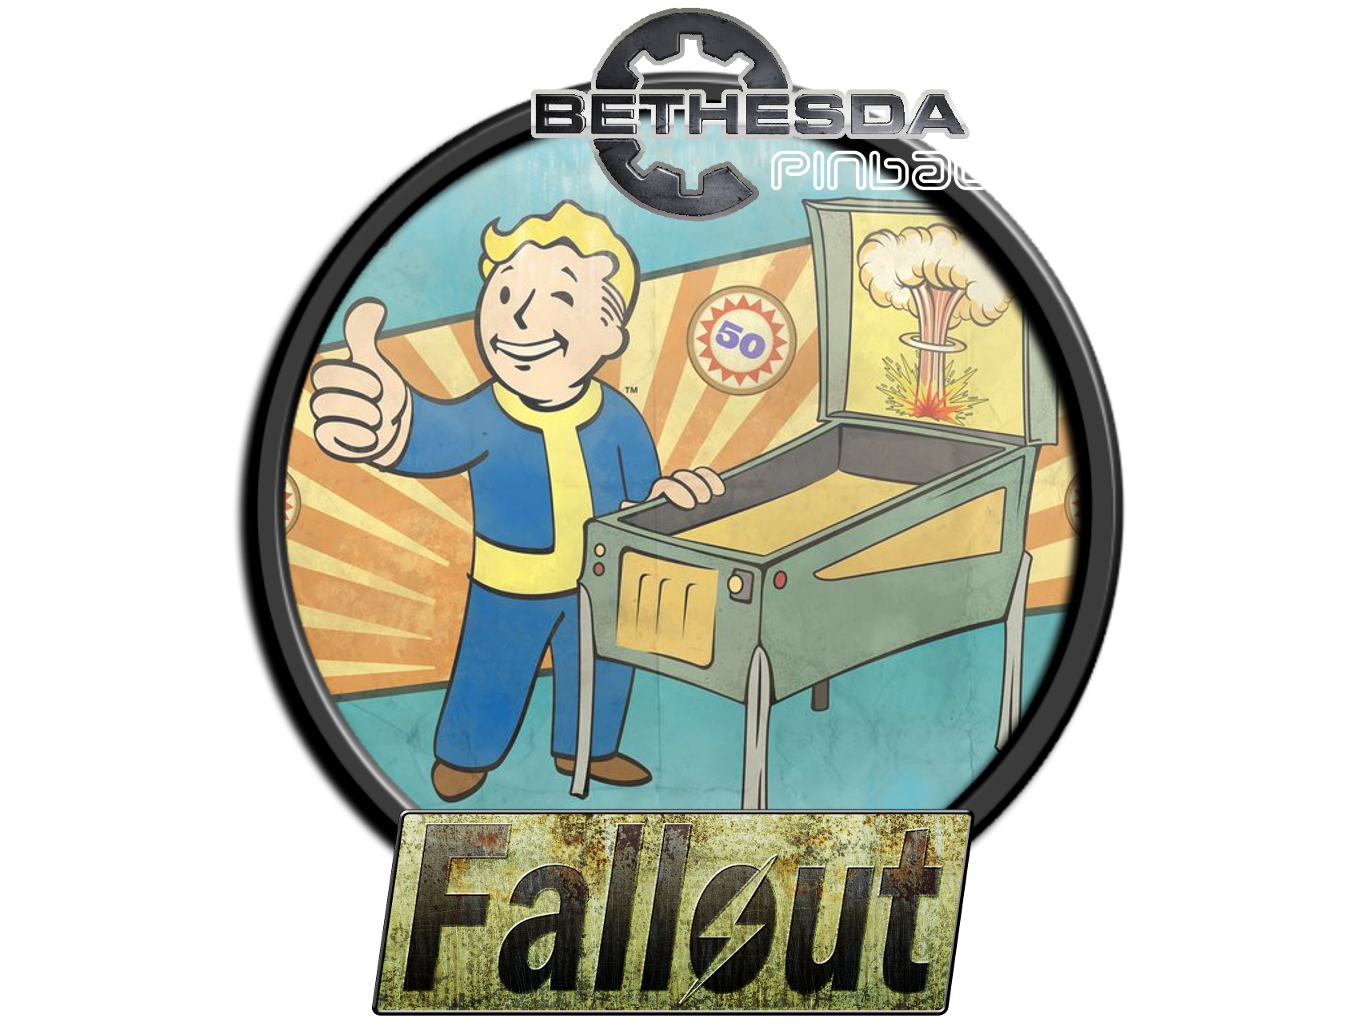 BETHESDA_Fallout.png